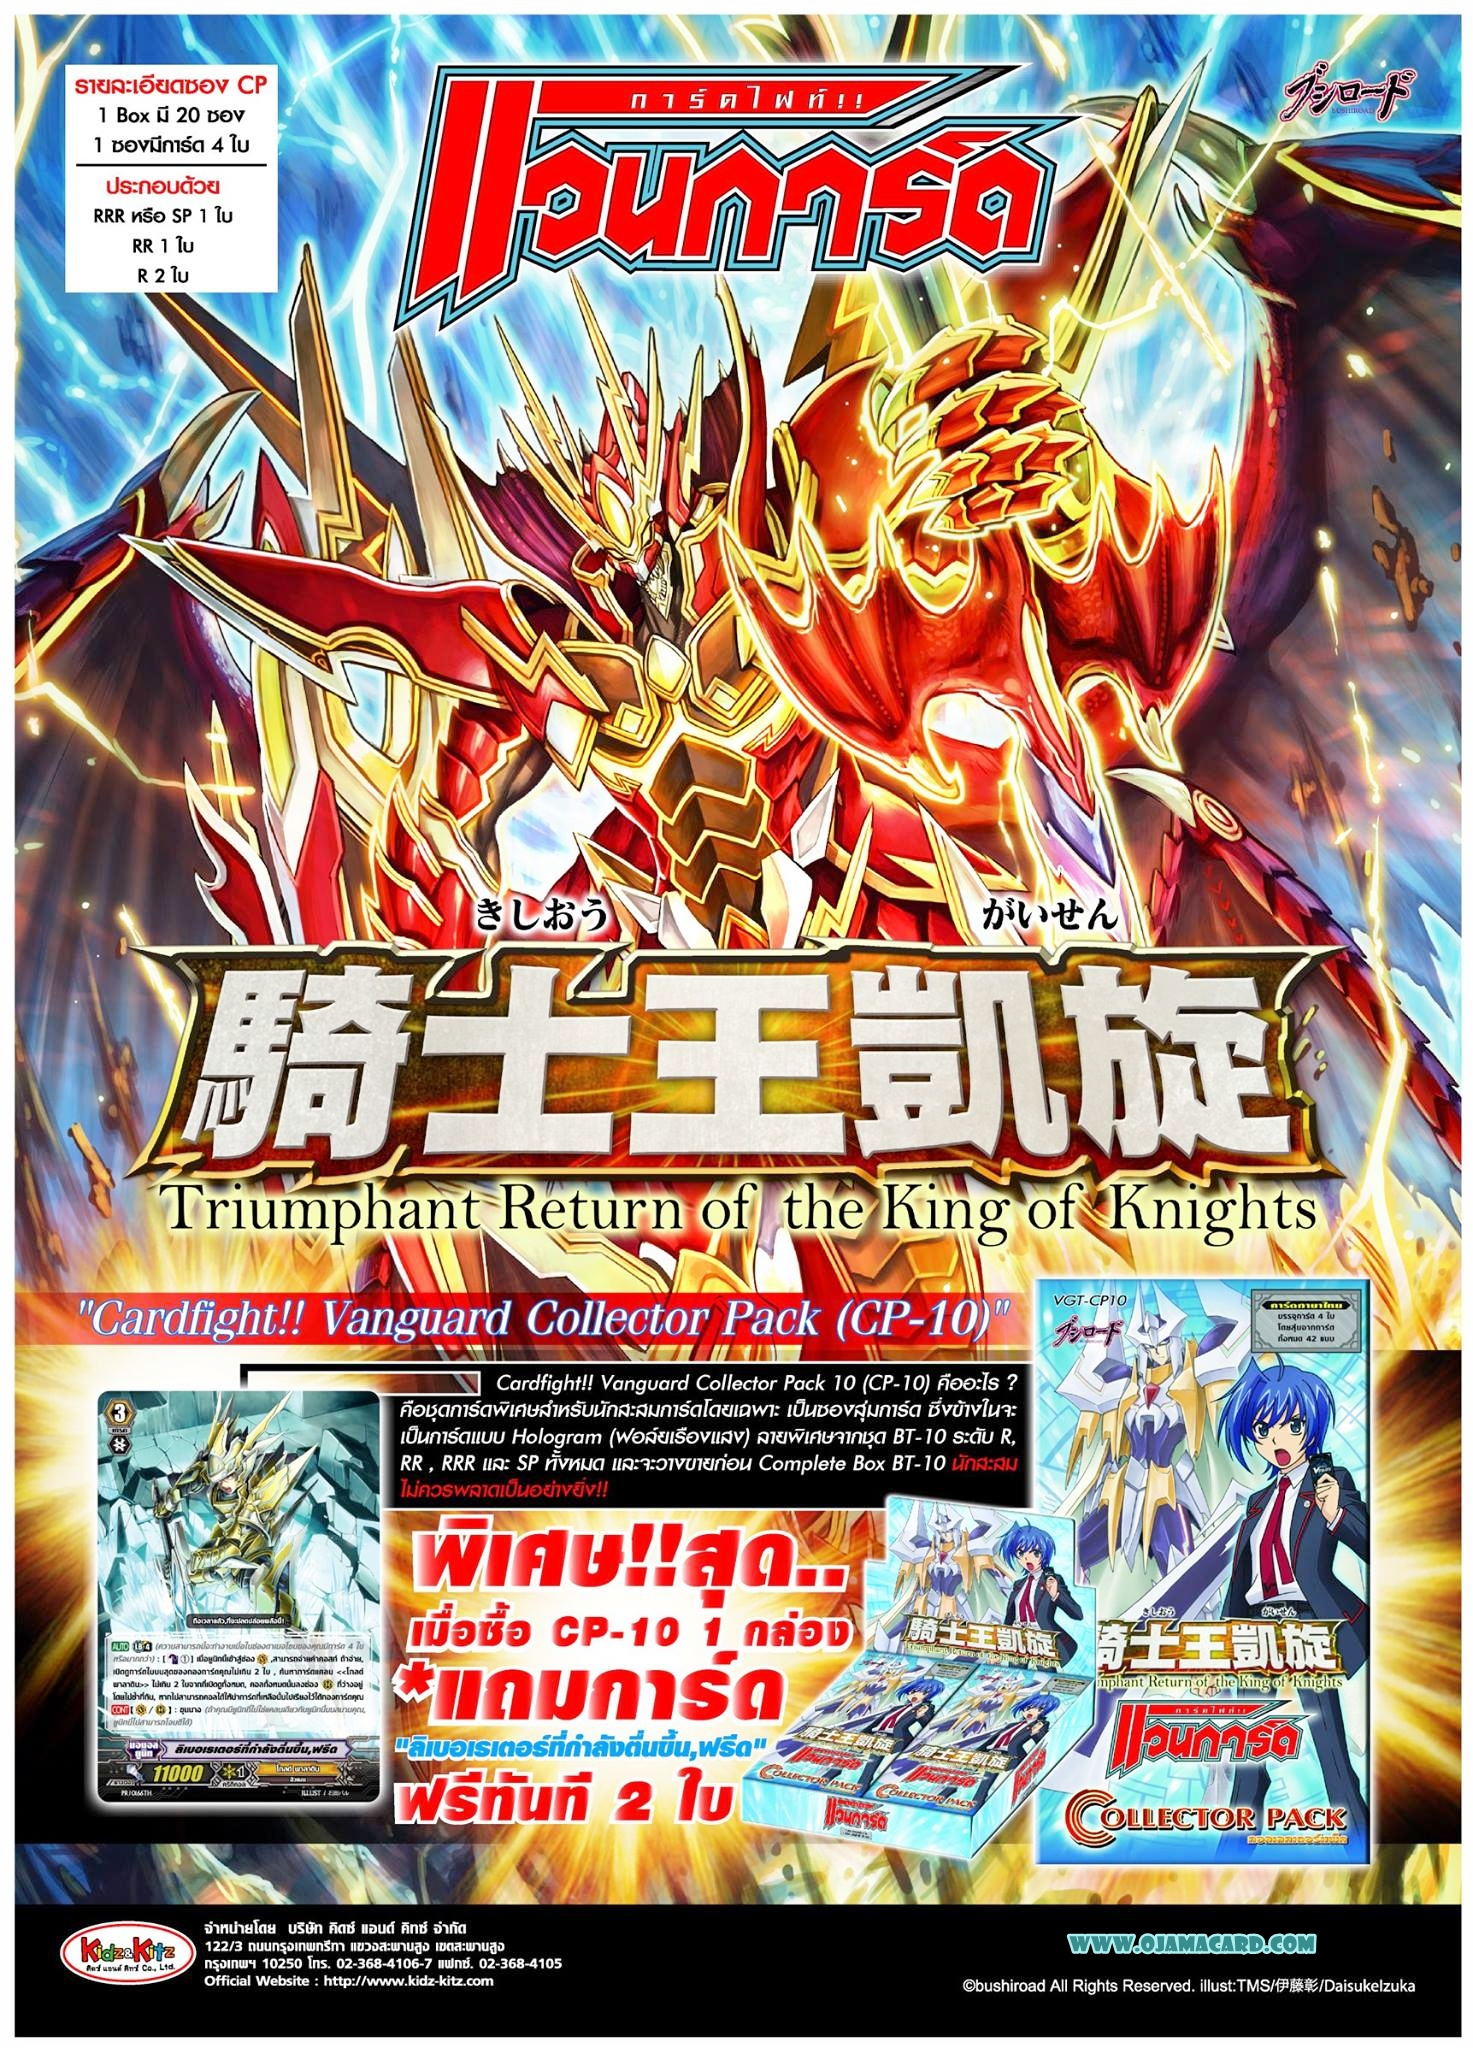 Collector Pack : Triumphant Return of the King of Knights (CP-10)